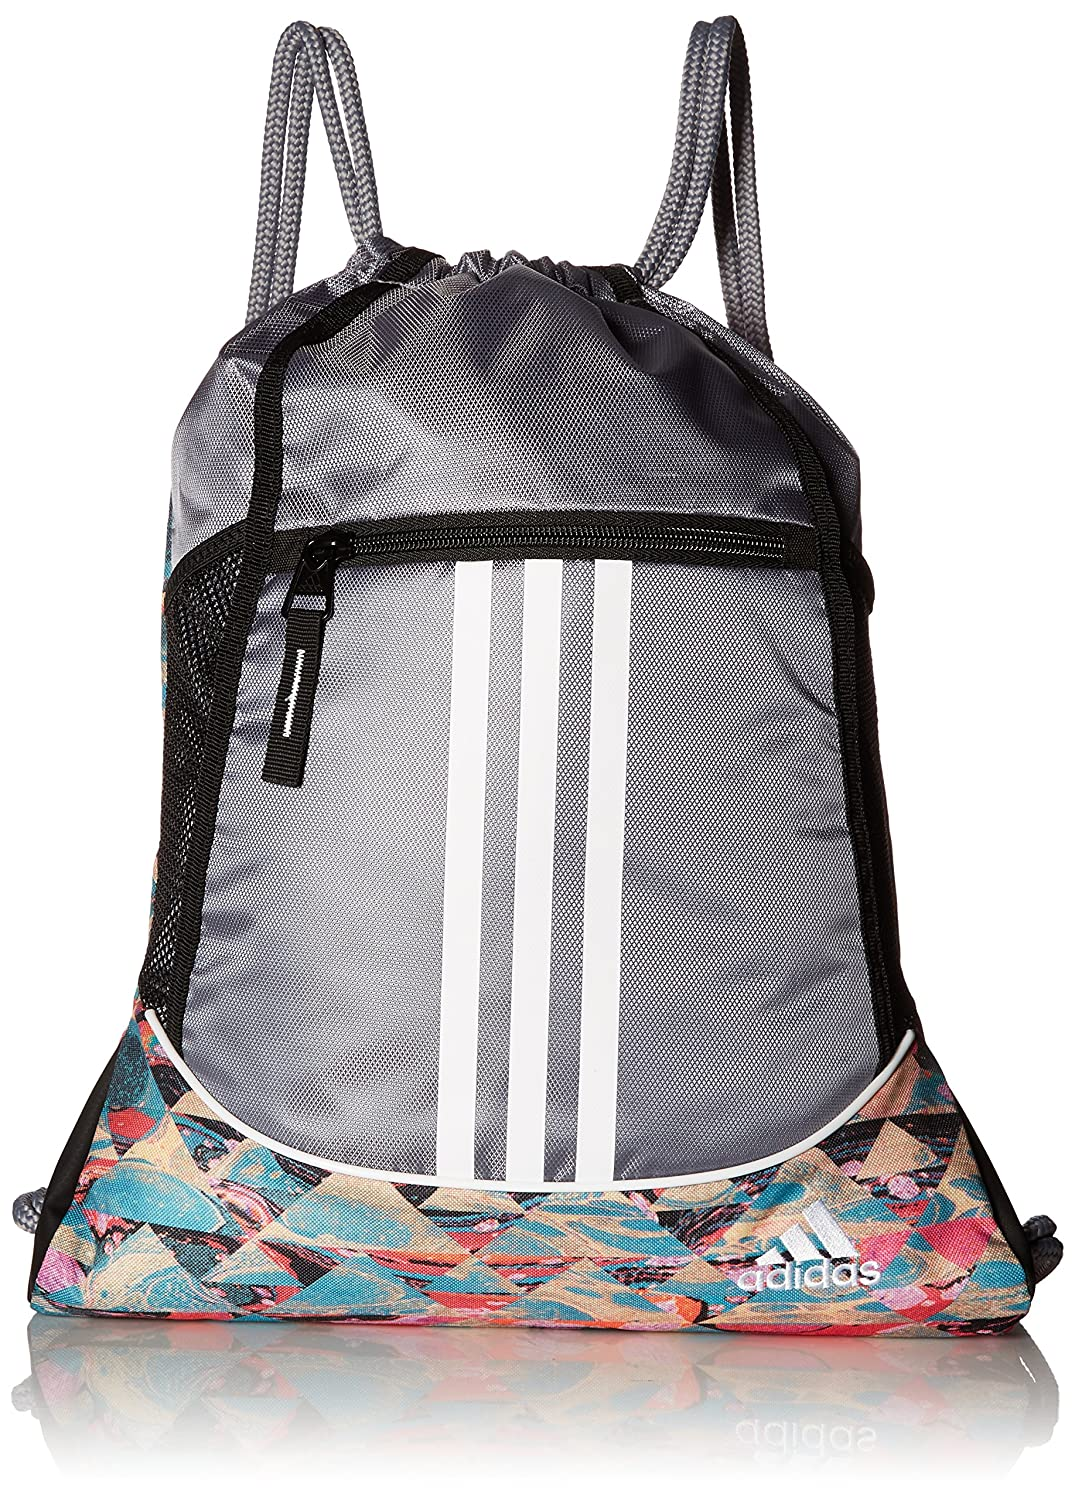 adidas Alliance II Sackpack 18 x 13 3/4-Inch Black 104148